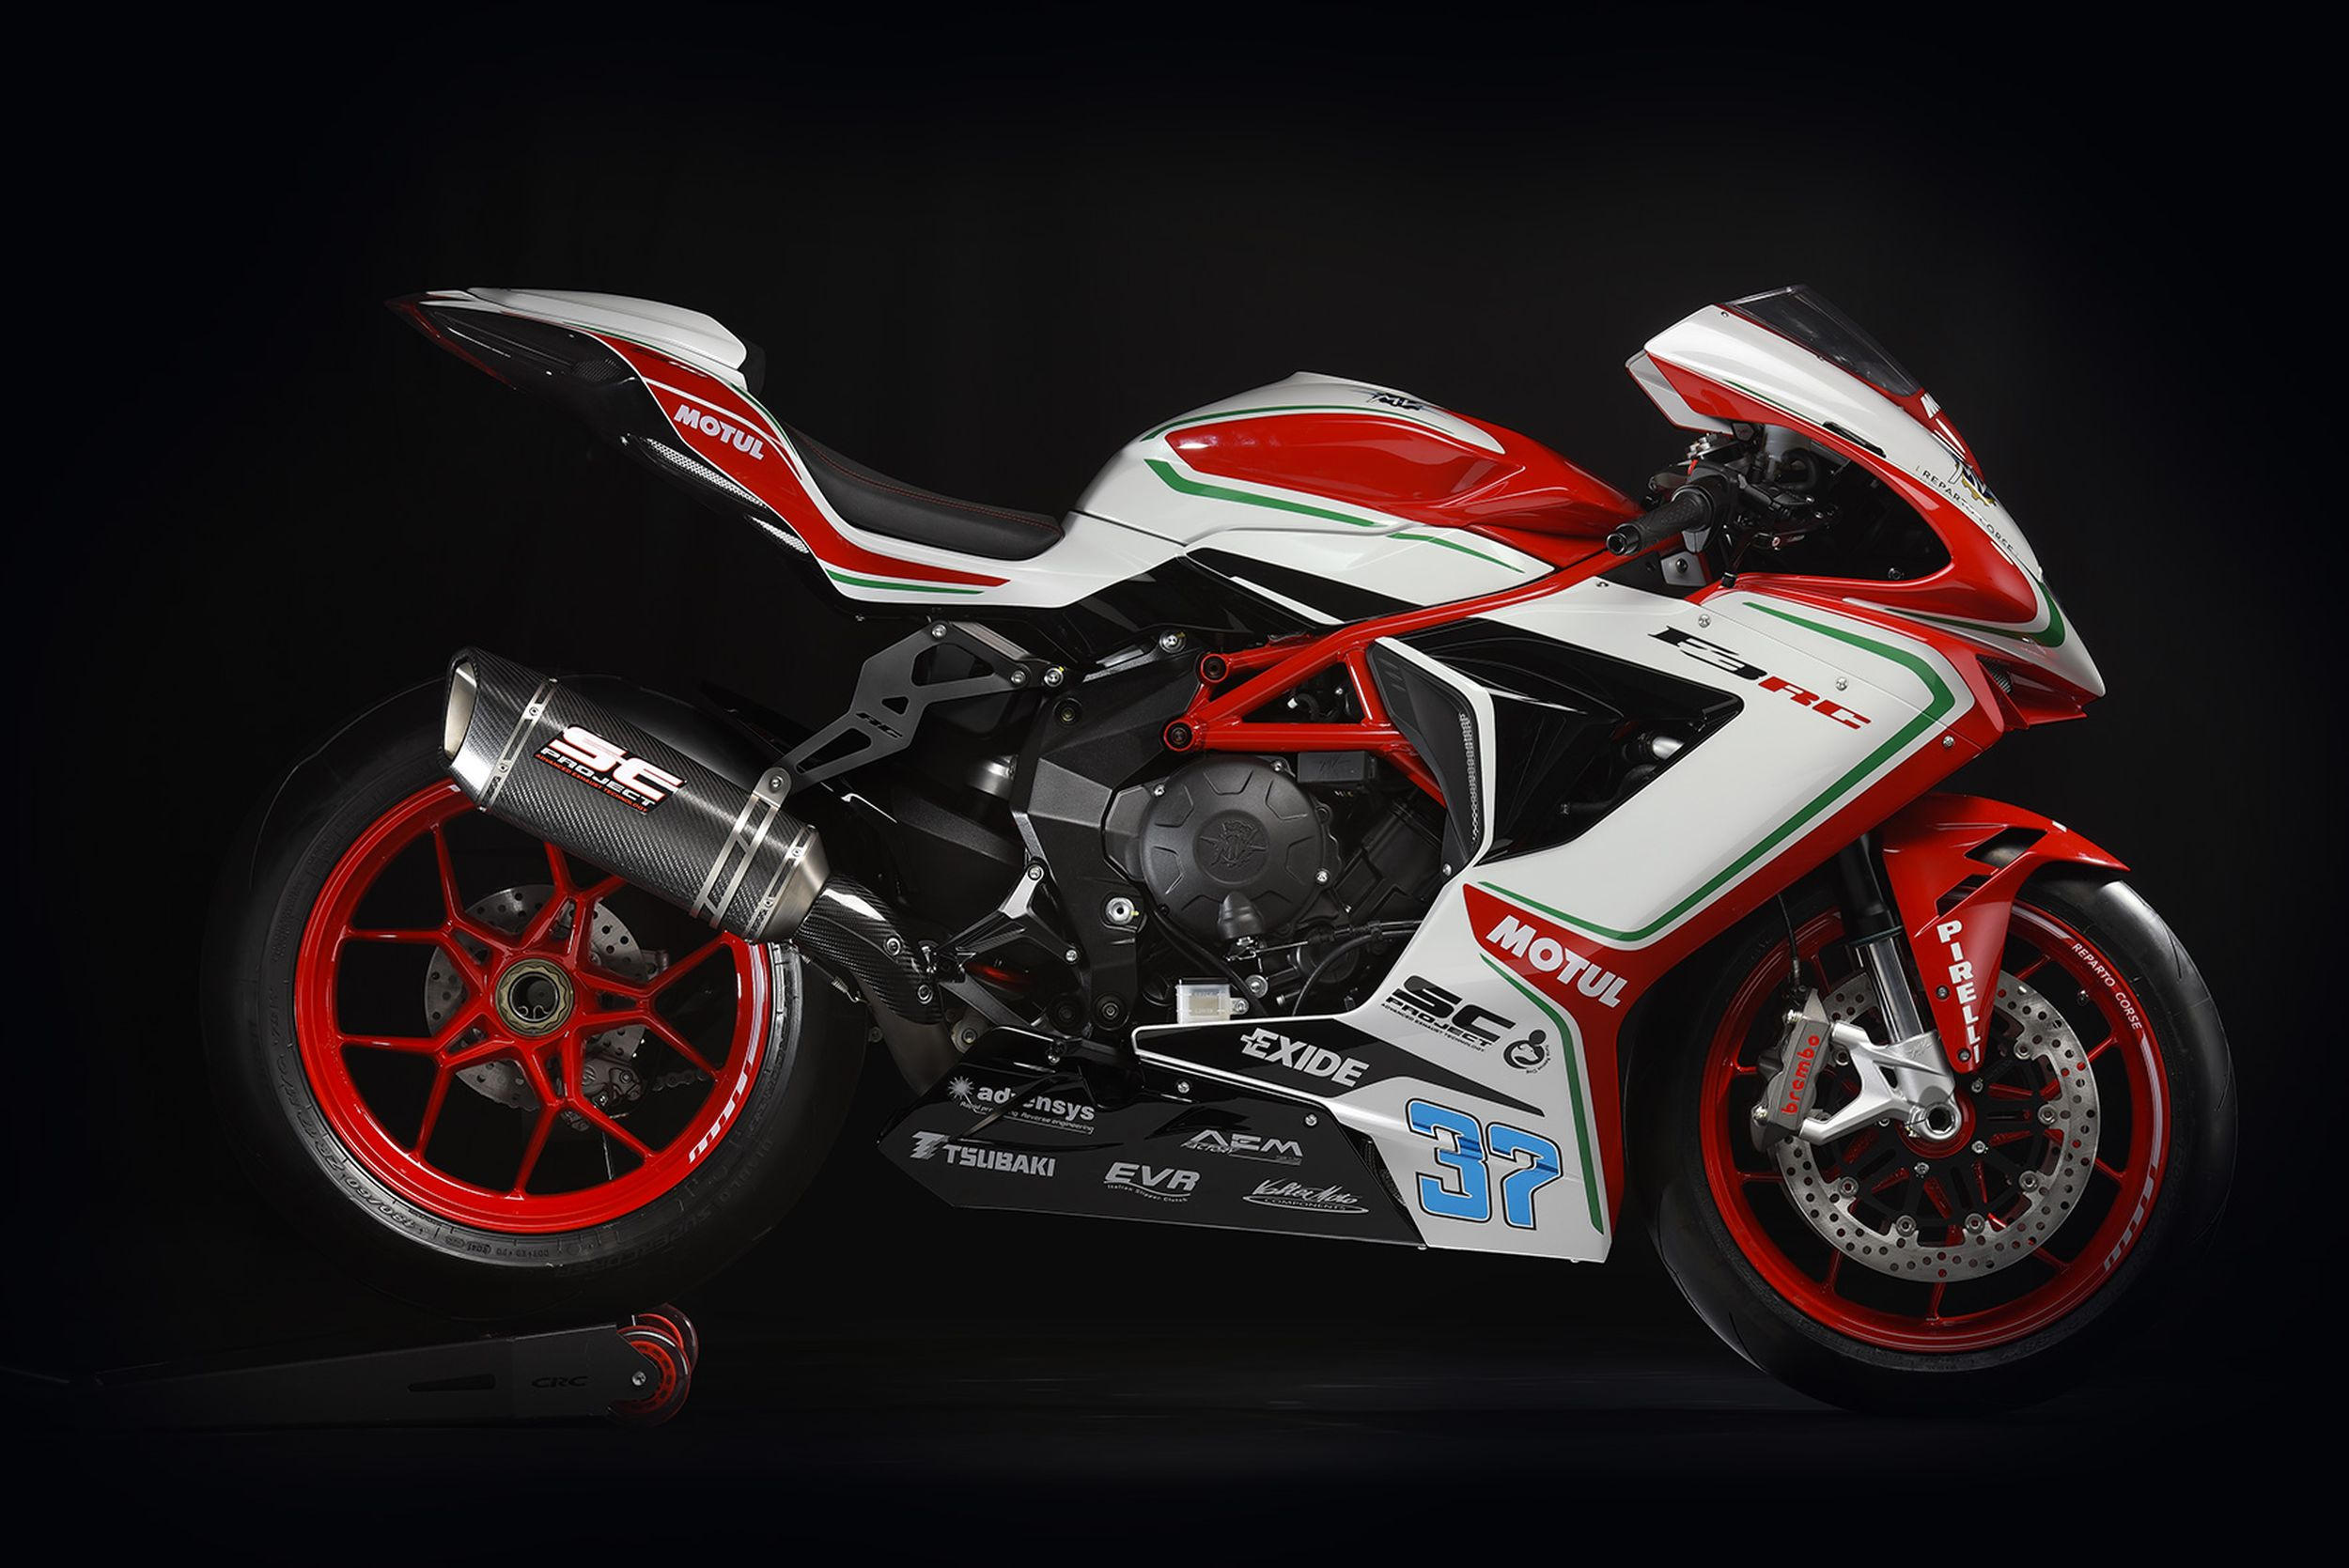 mv agusta f3 800 rc alle technischen daten zum modell f3. Black Bedroom Furniture Sets. Home Design Ideas